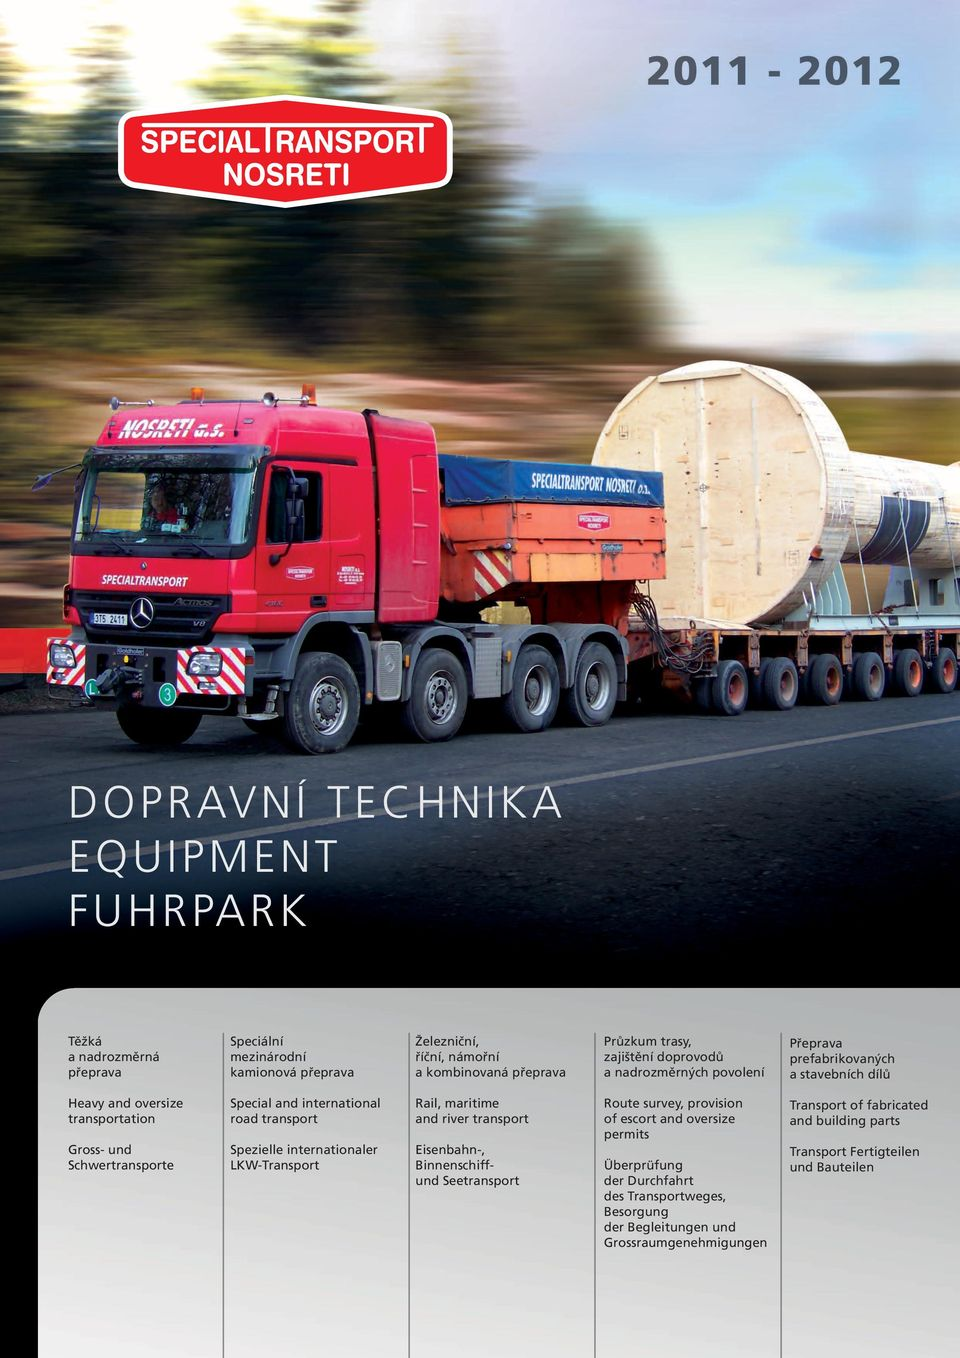 road transport Spezielle internationaler LKW-Transport Rail, maritime and river transport Eisenbahn-, Binnenschiffund Seetransport Route survey, provision of escort and oversize